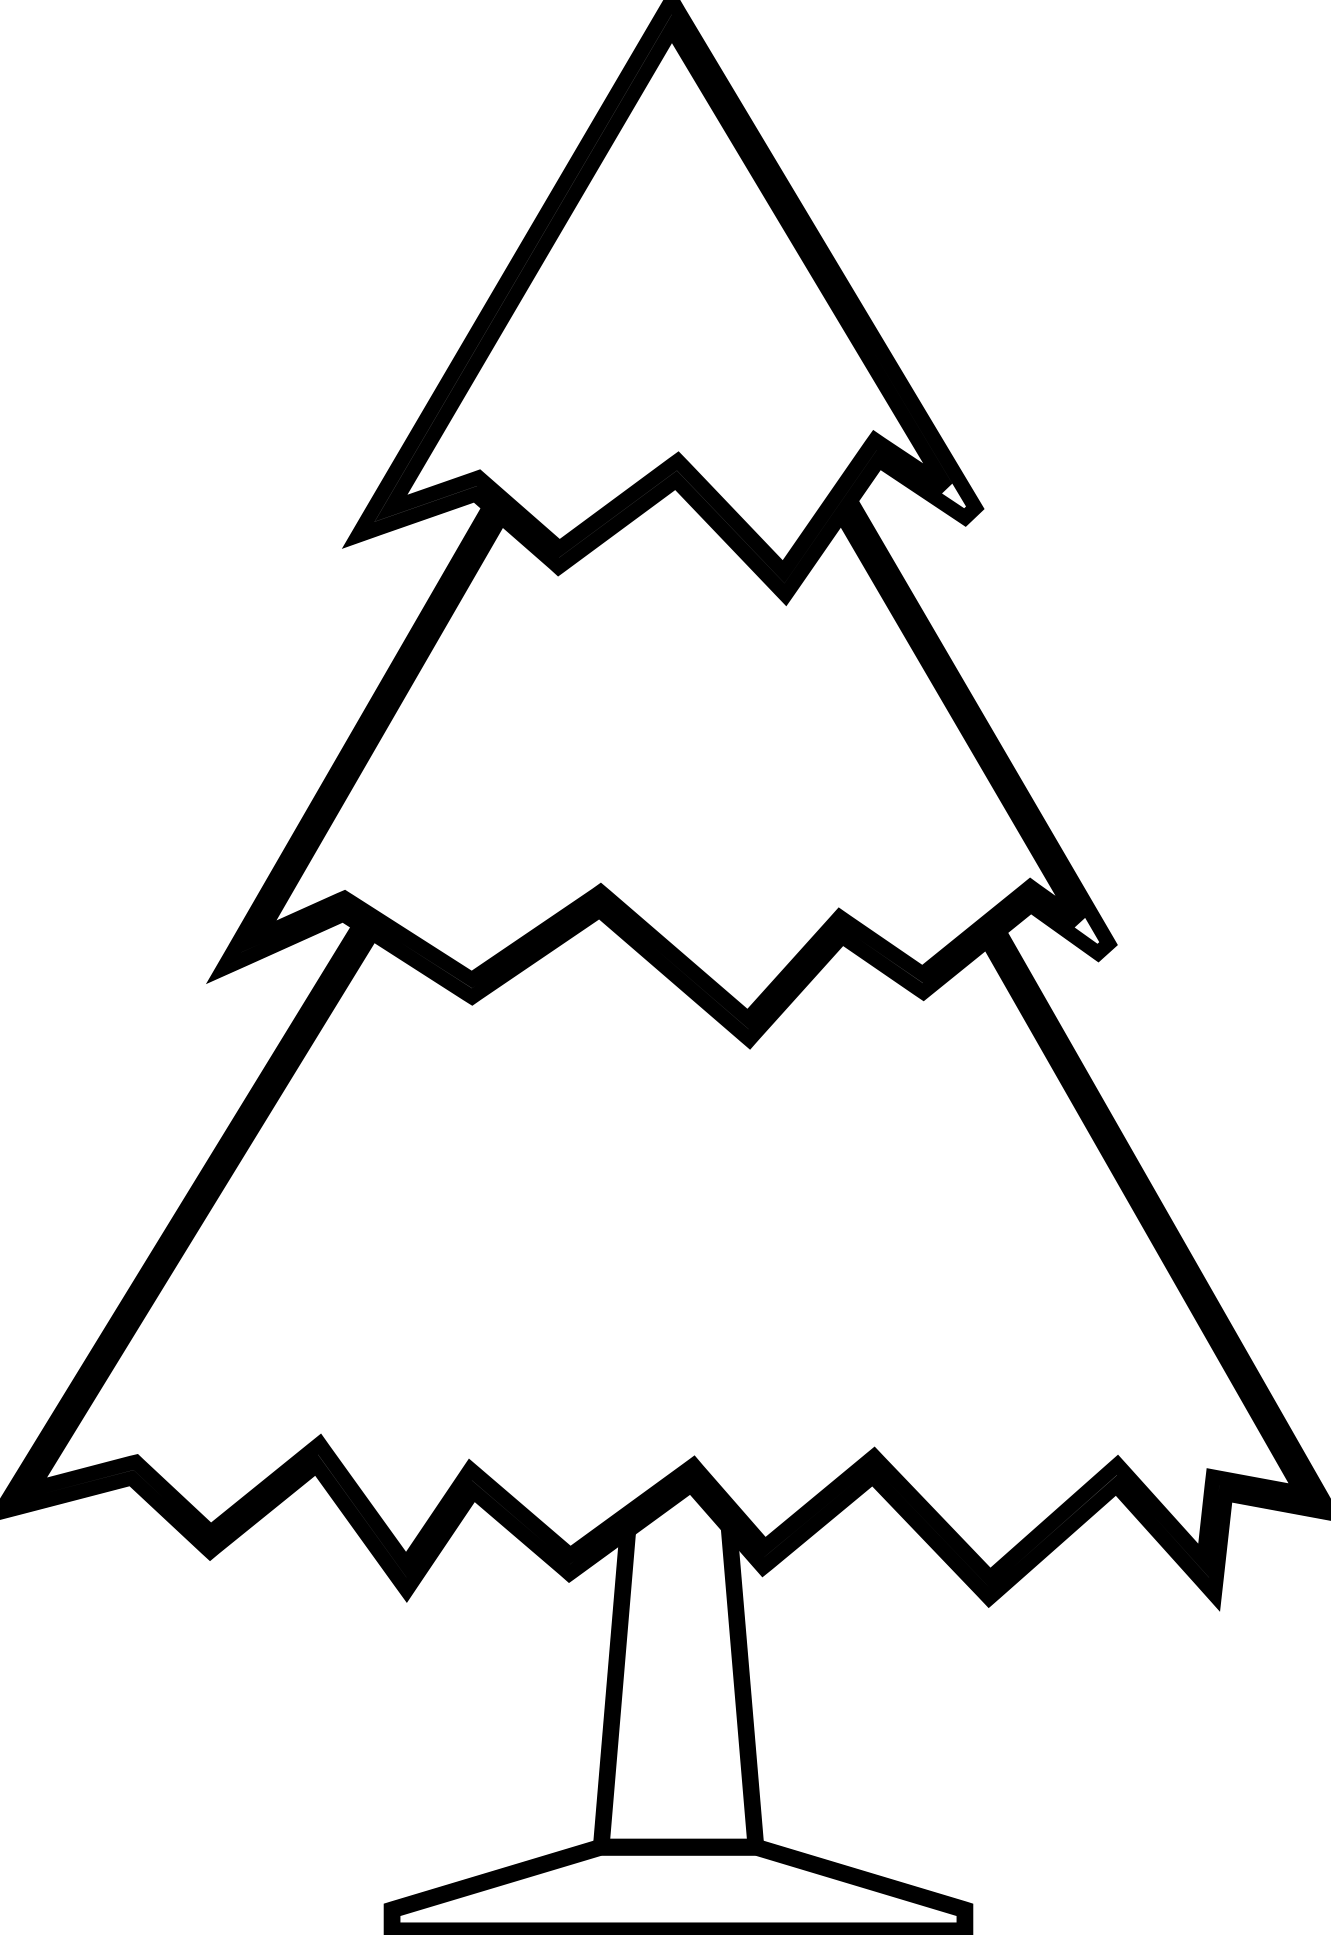 Grinch tree clipart graphic free download Best Images Of Tree Clipart Black and White - Best Home Plans and ... graphic free download